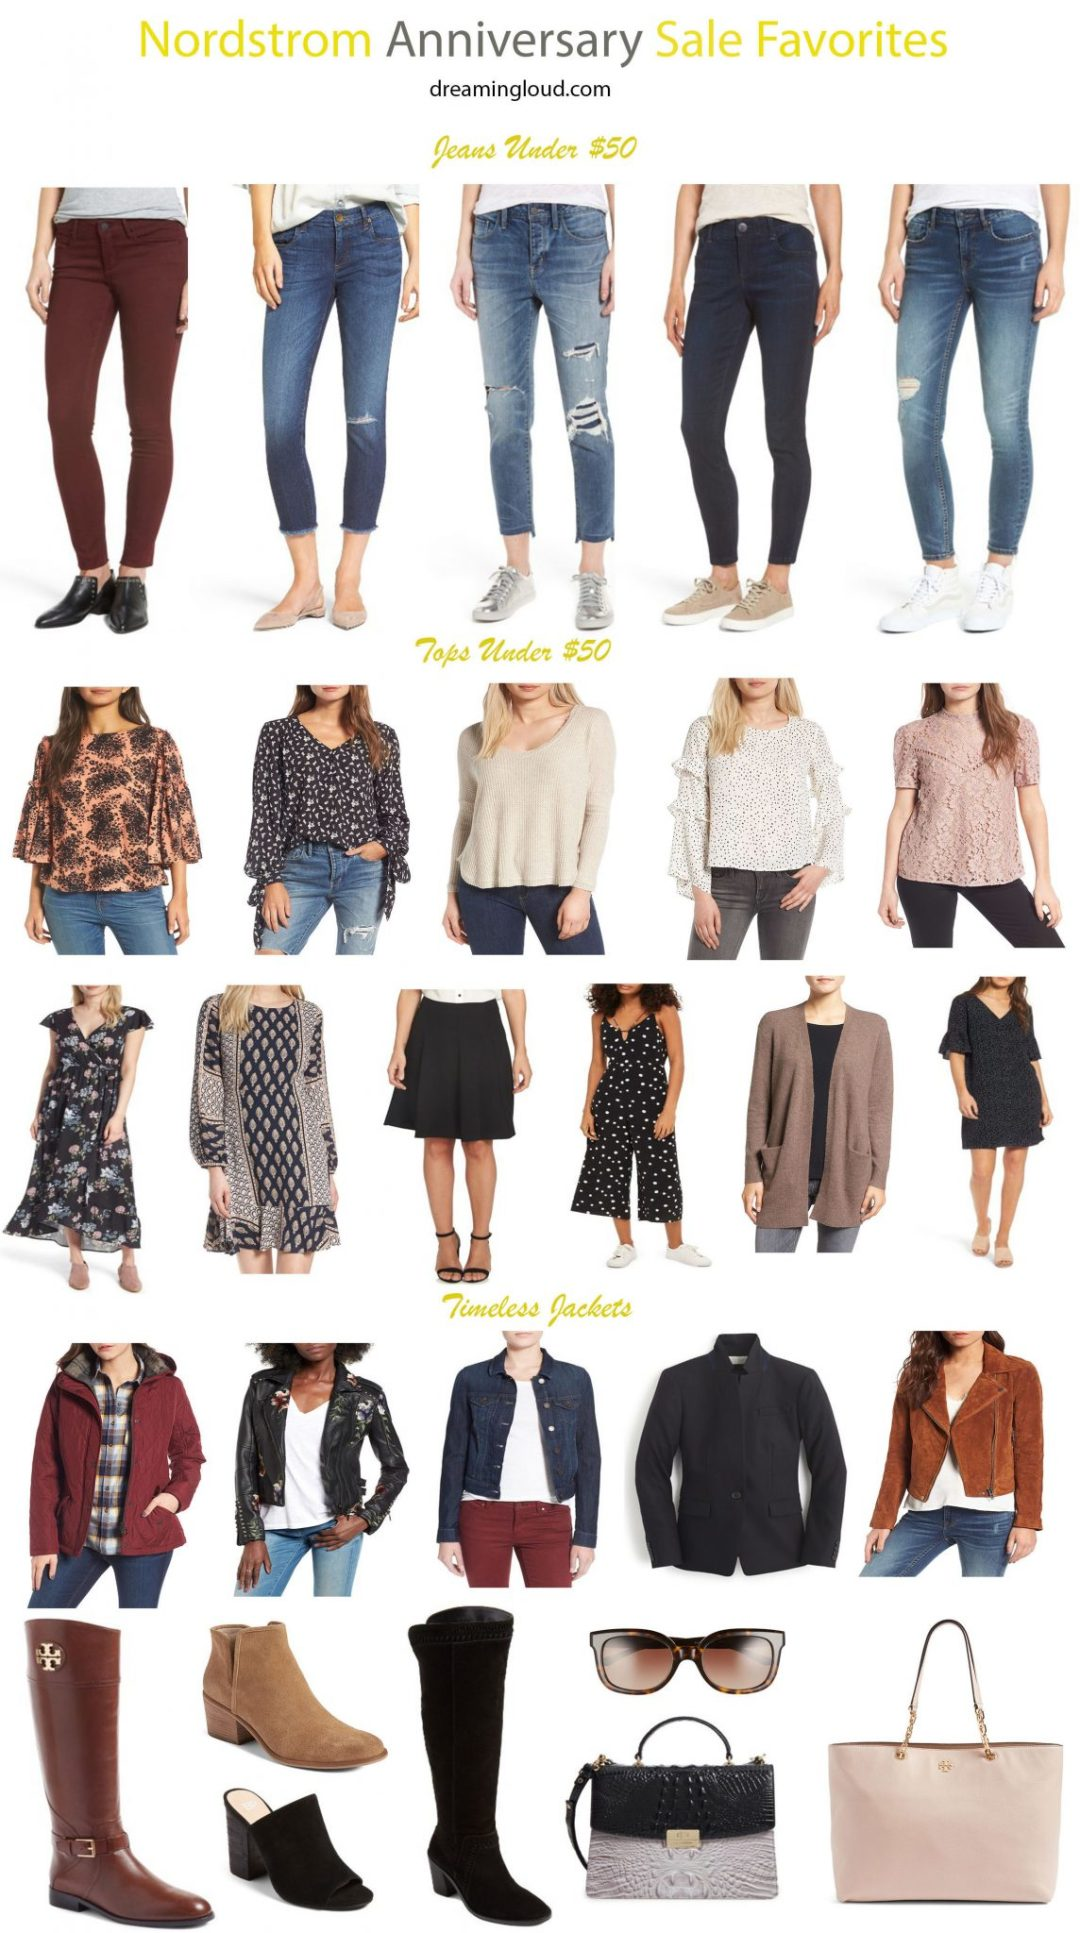 Nordstrom-Anniversary-Sale-Highlights-2017-dreaming-loud-1